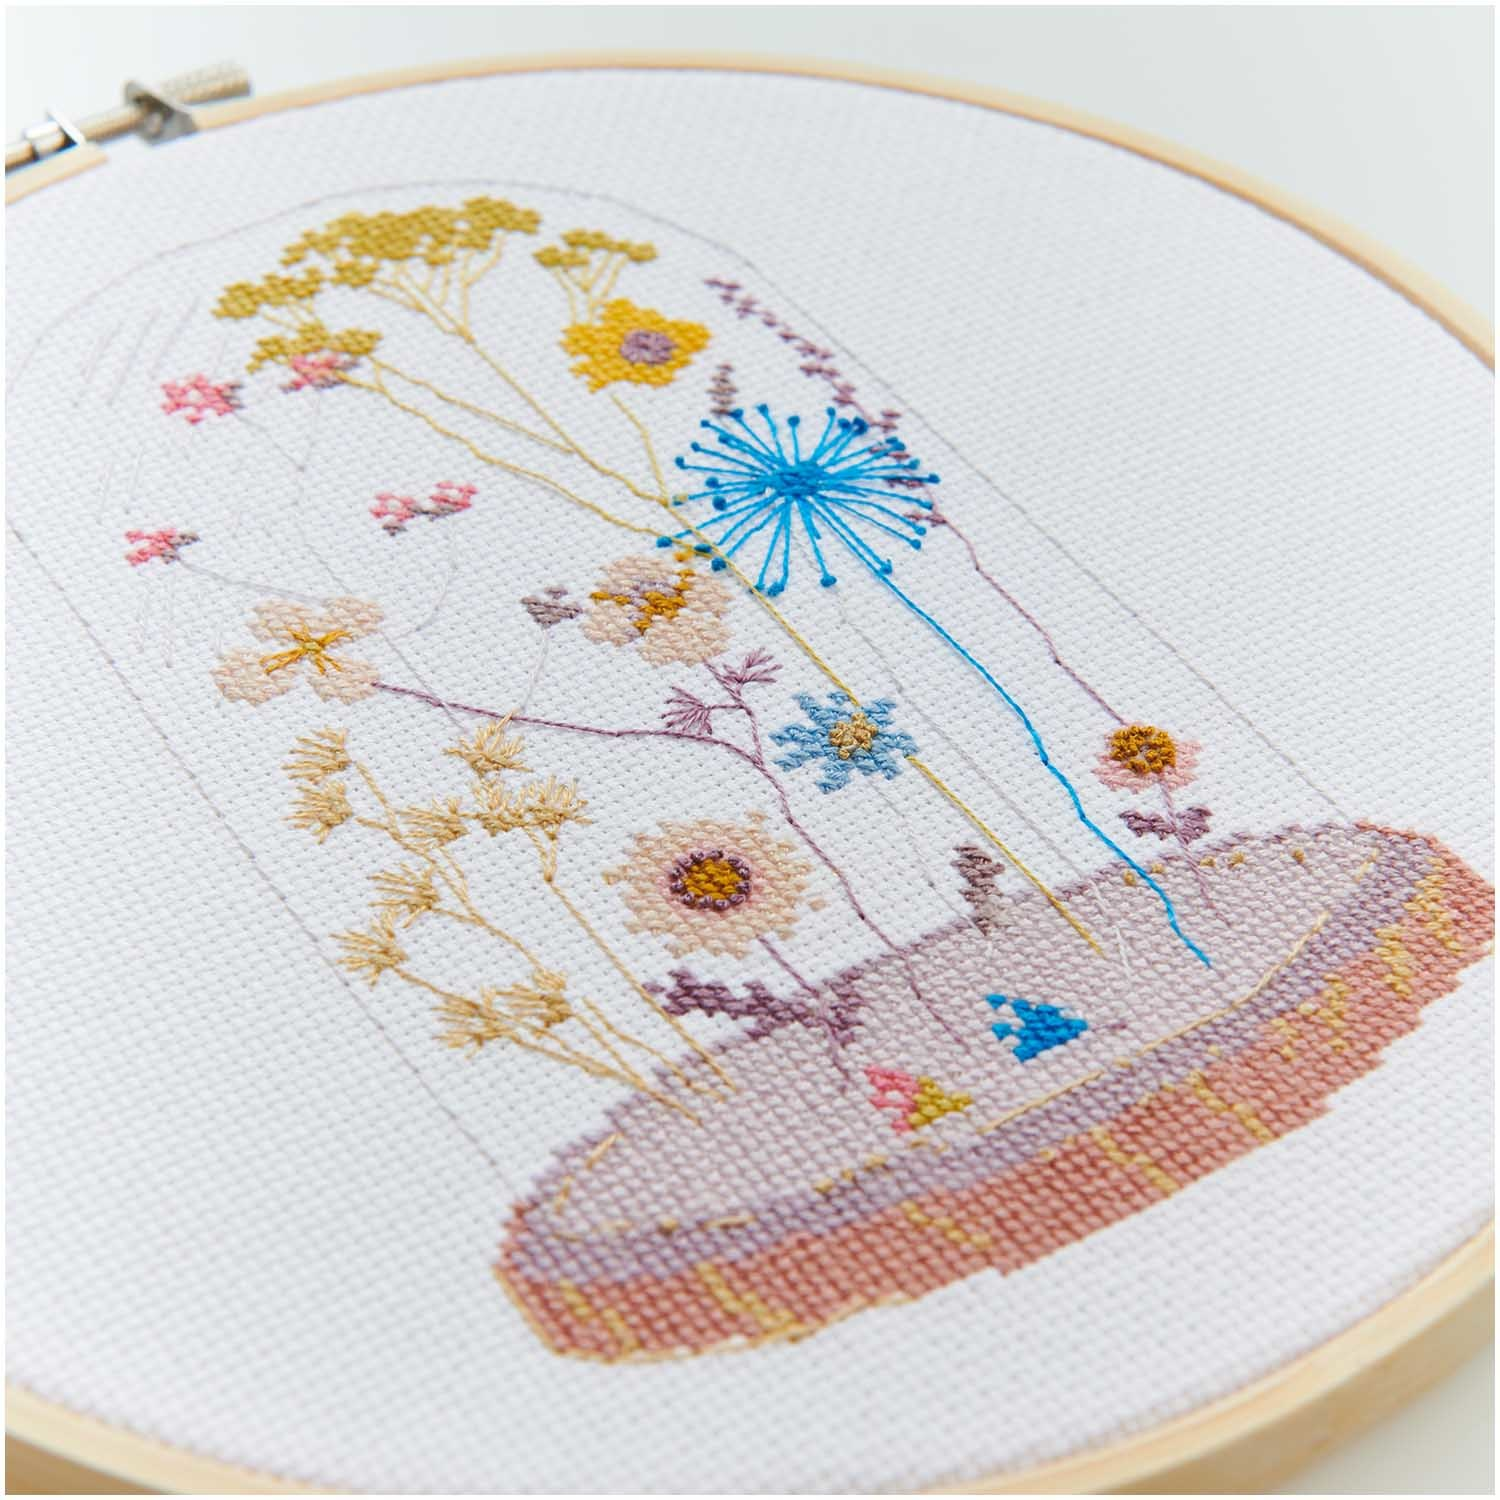 Rico NAY Embroidery kit transformation glass bell, picture Ø 20 cm, counted cross stitch